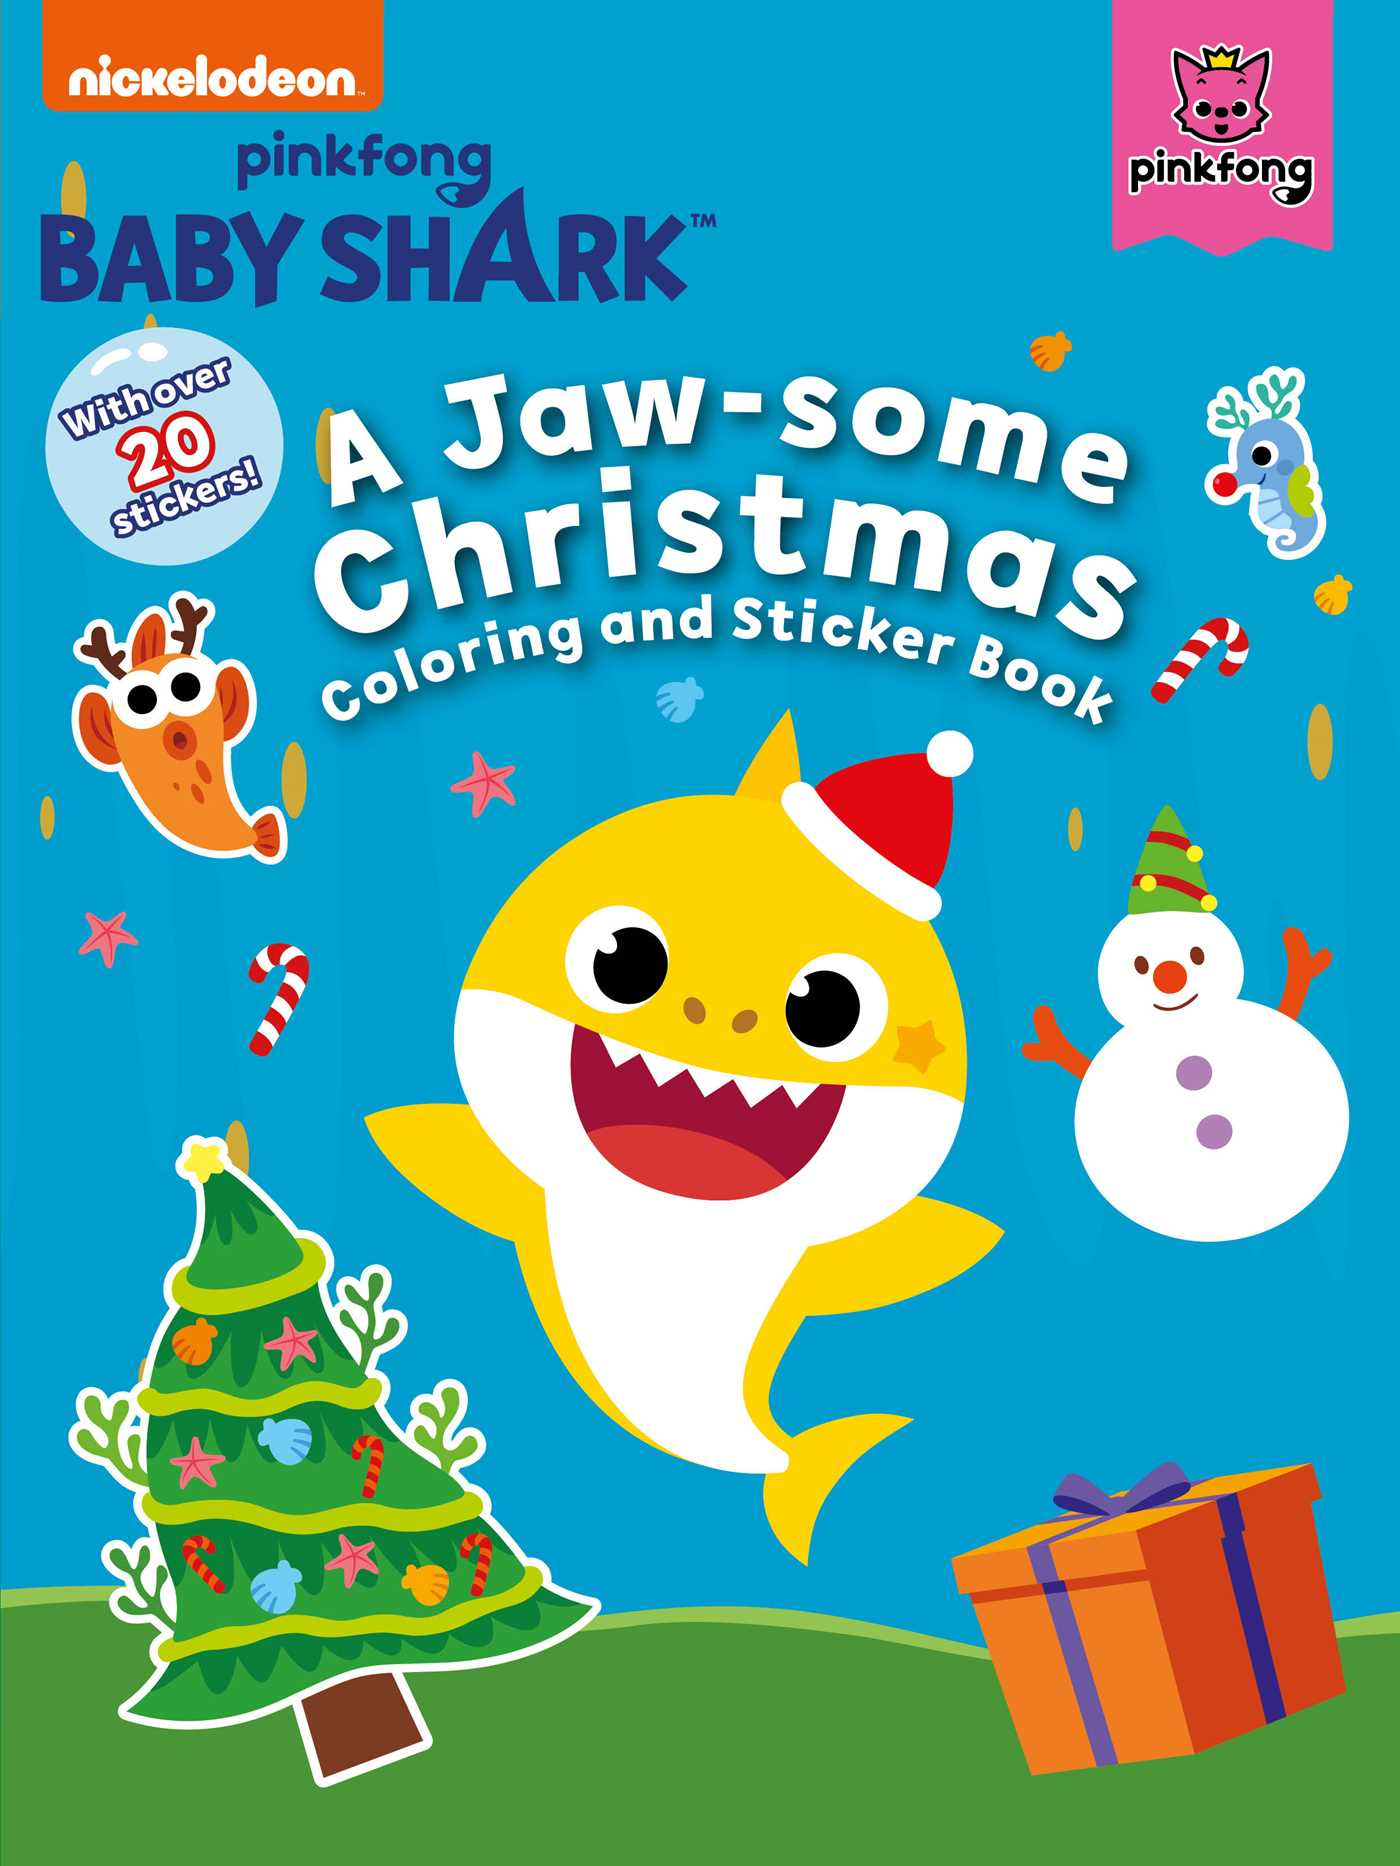 Baby Shark Christmas : shark, christmas, Shark:, Jaw-some, Christmas, Coloring, Sticker, Pinkfong, Official, Publisher, Simon, Schuster